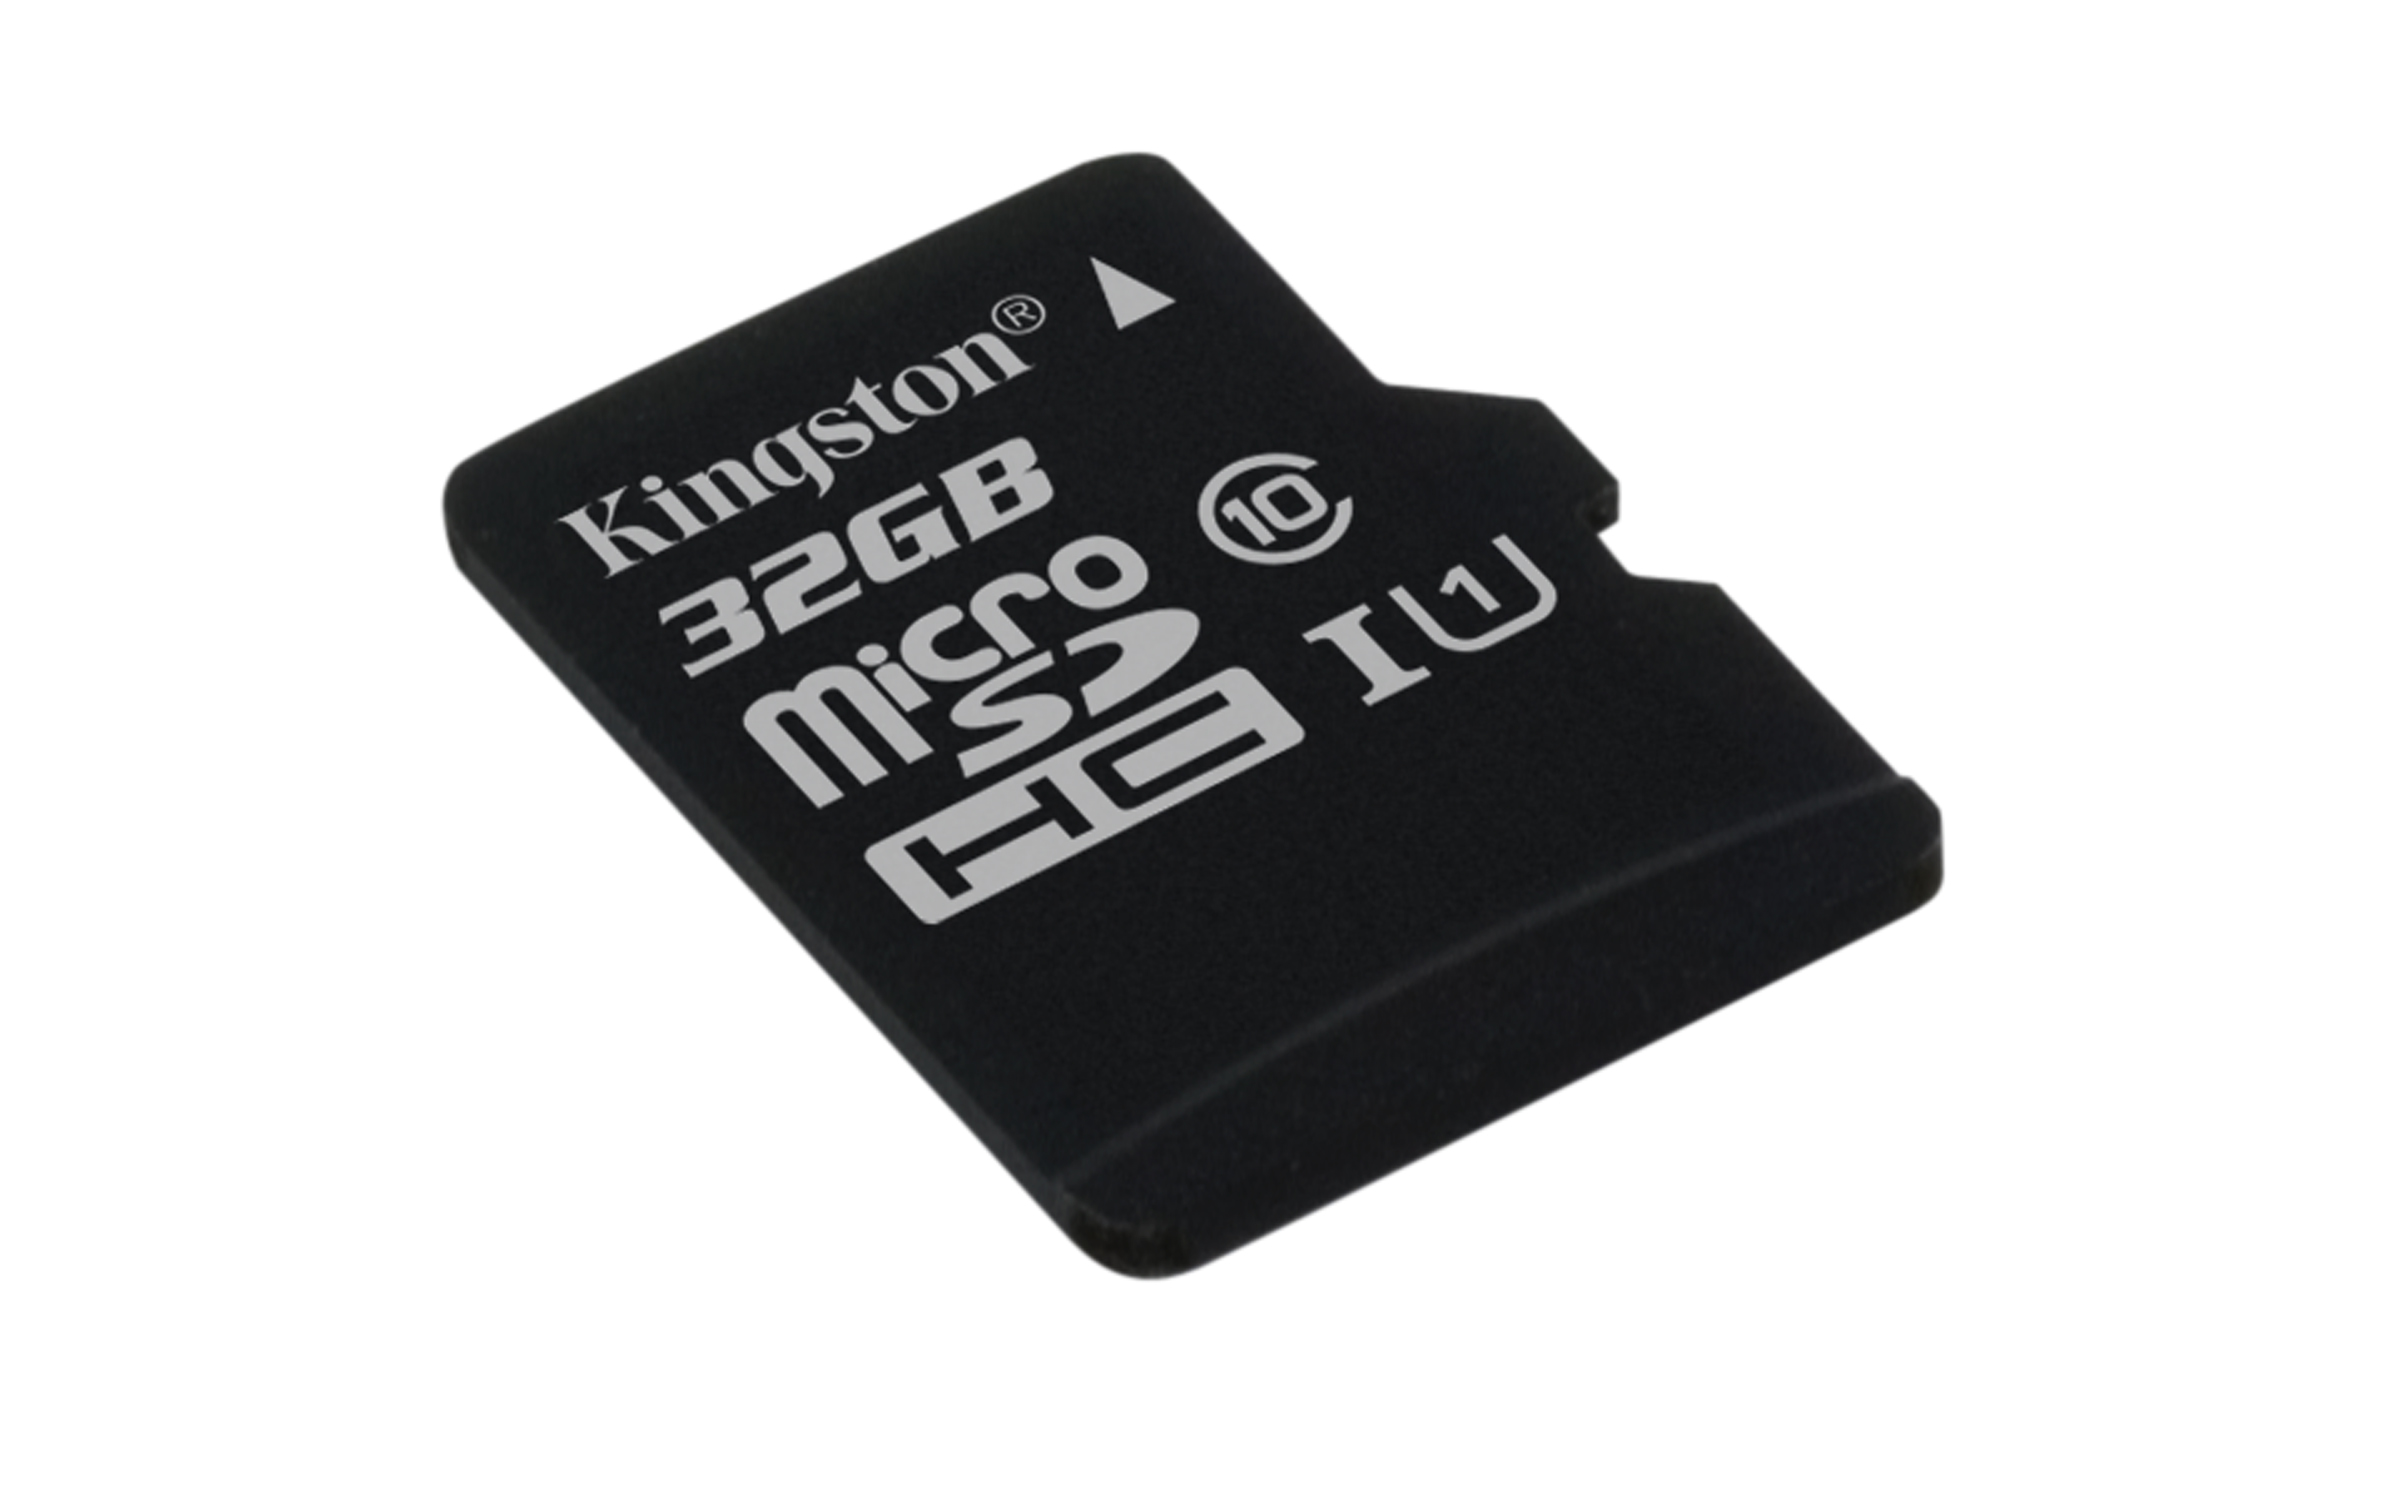 KINGSTON 32GB microSDHC Memory Card 45MB/10MBs- UHS-I class 10 Gen 2 - bez adaptéru